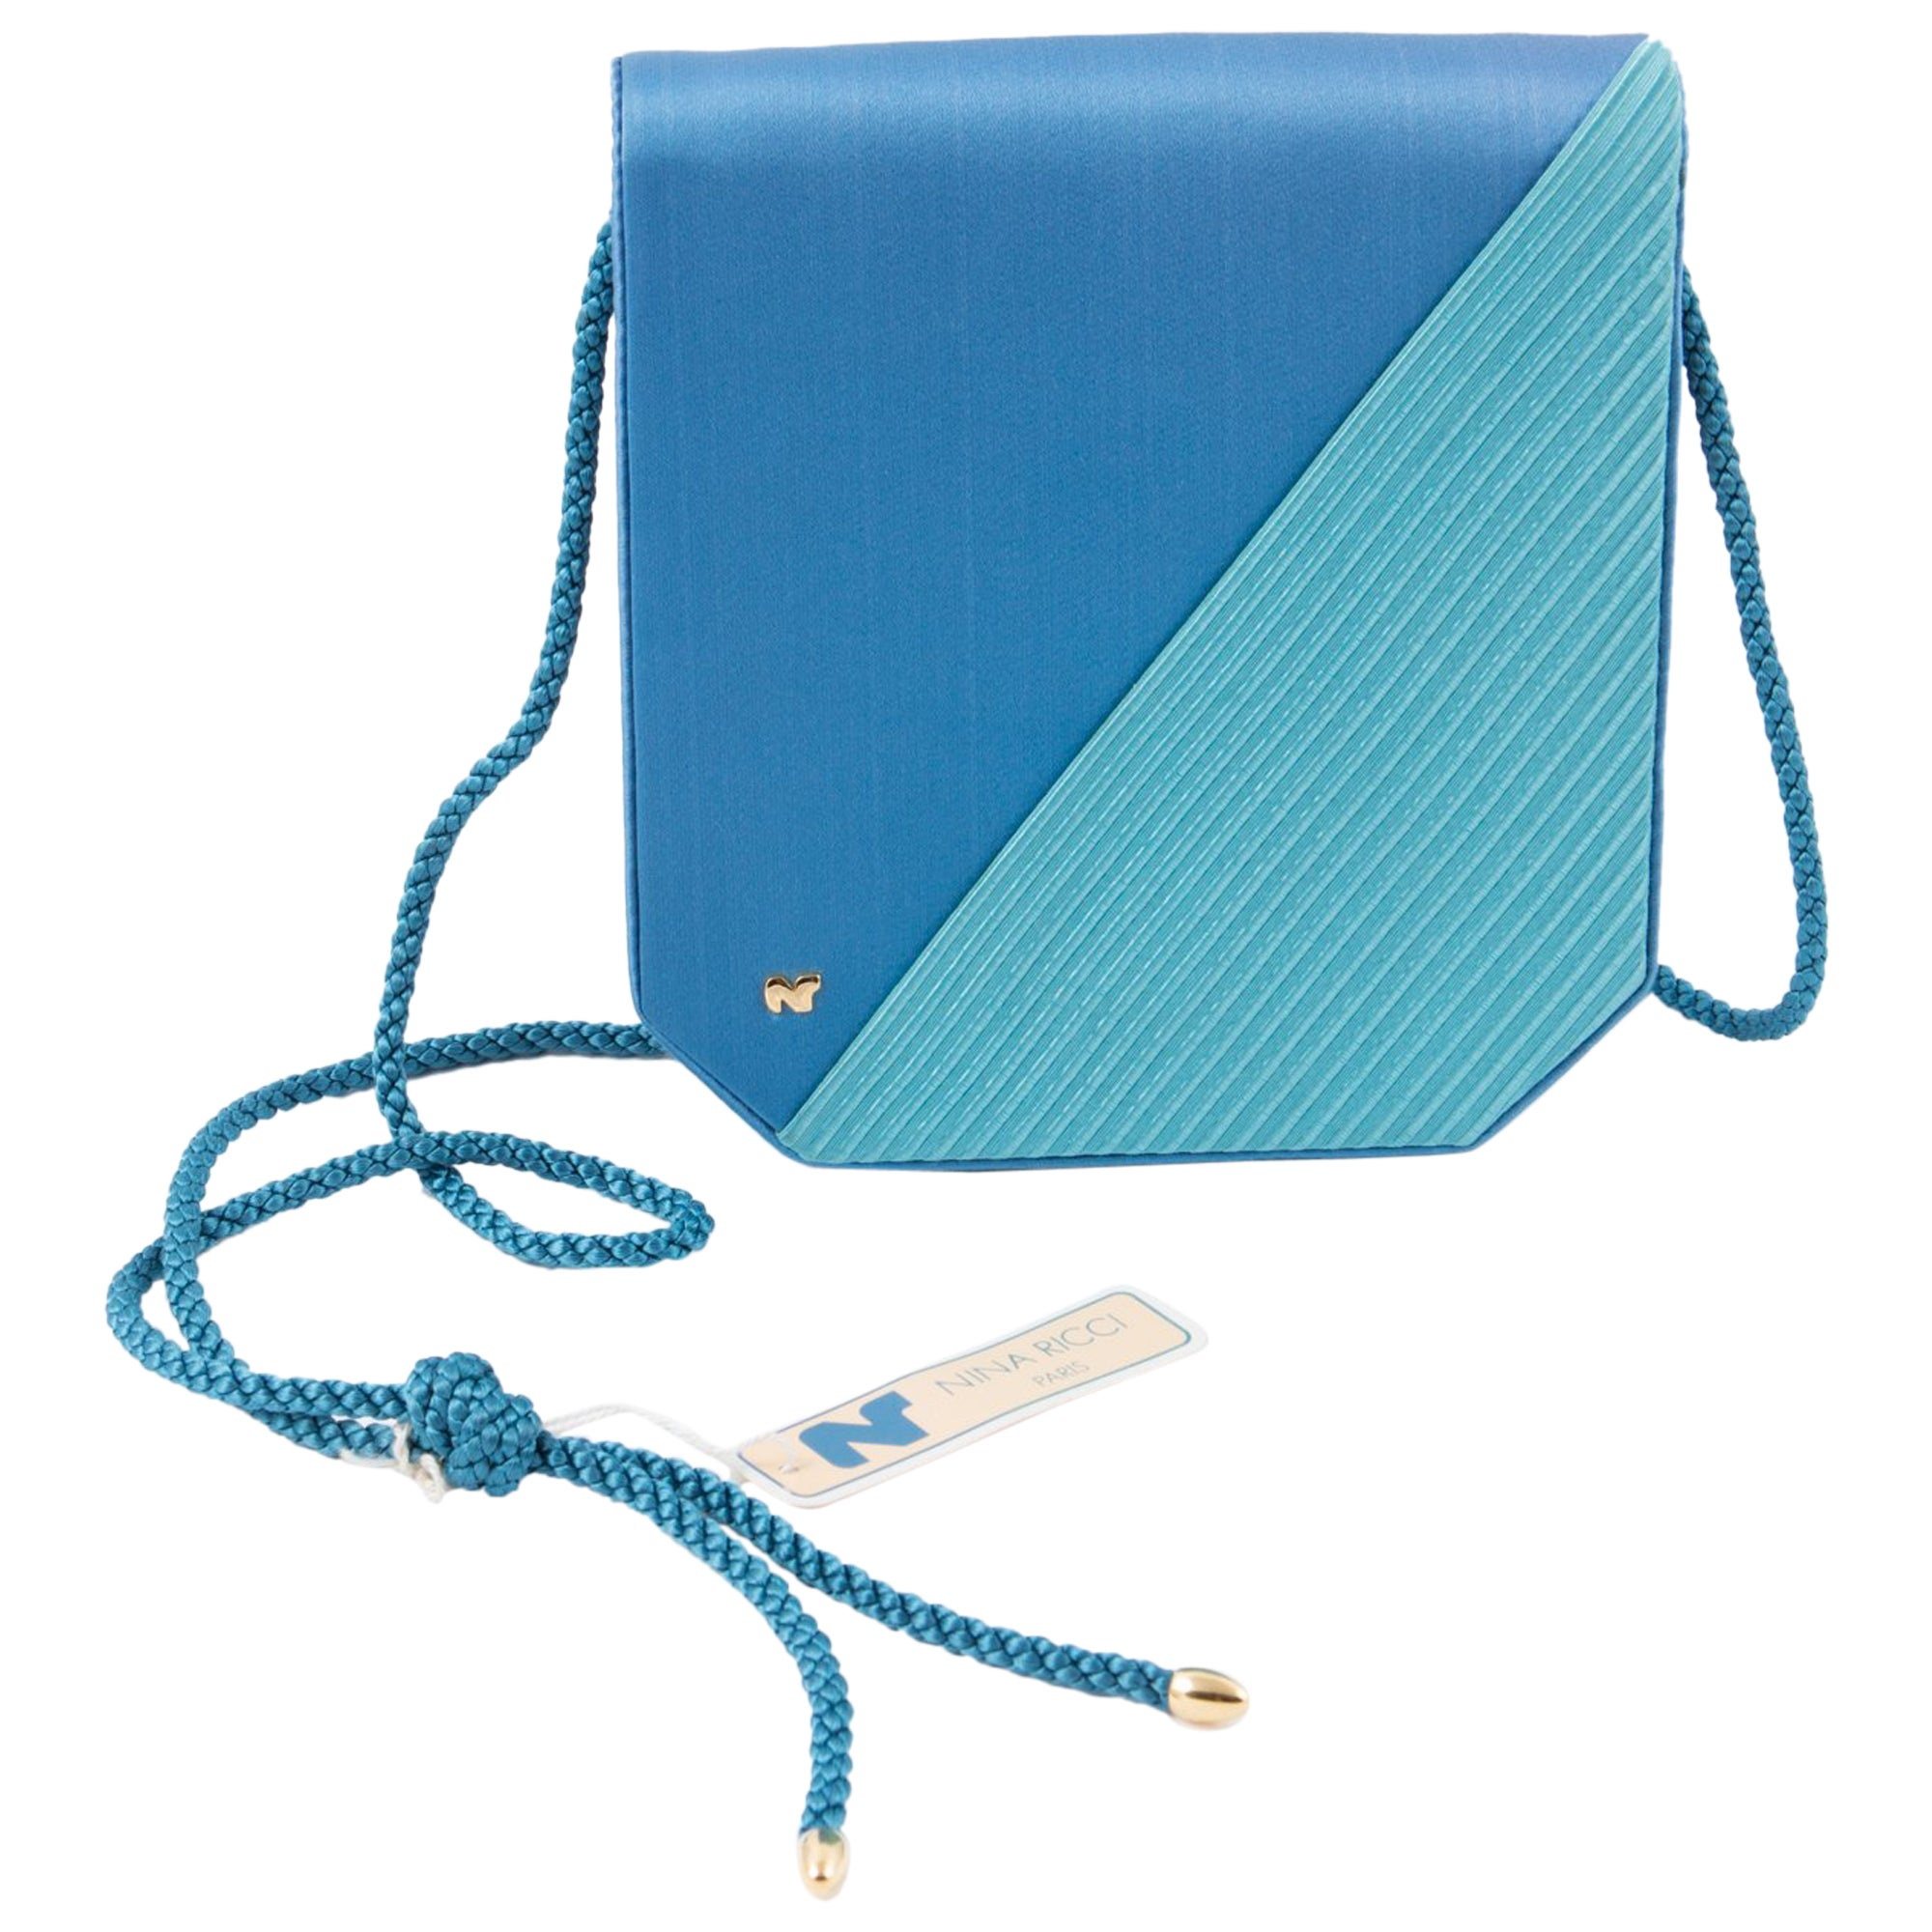 1bcd48ec896b Nina Ricci Turquoise Silk Evening Bag For Sale at 1stdibs